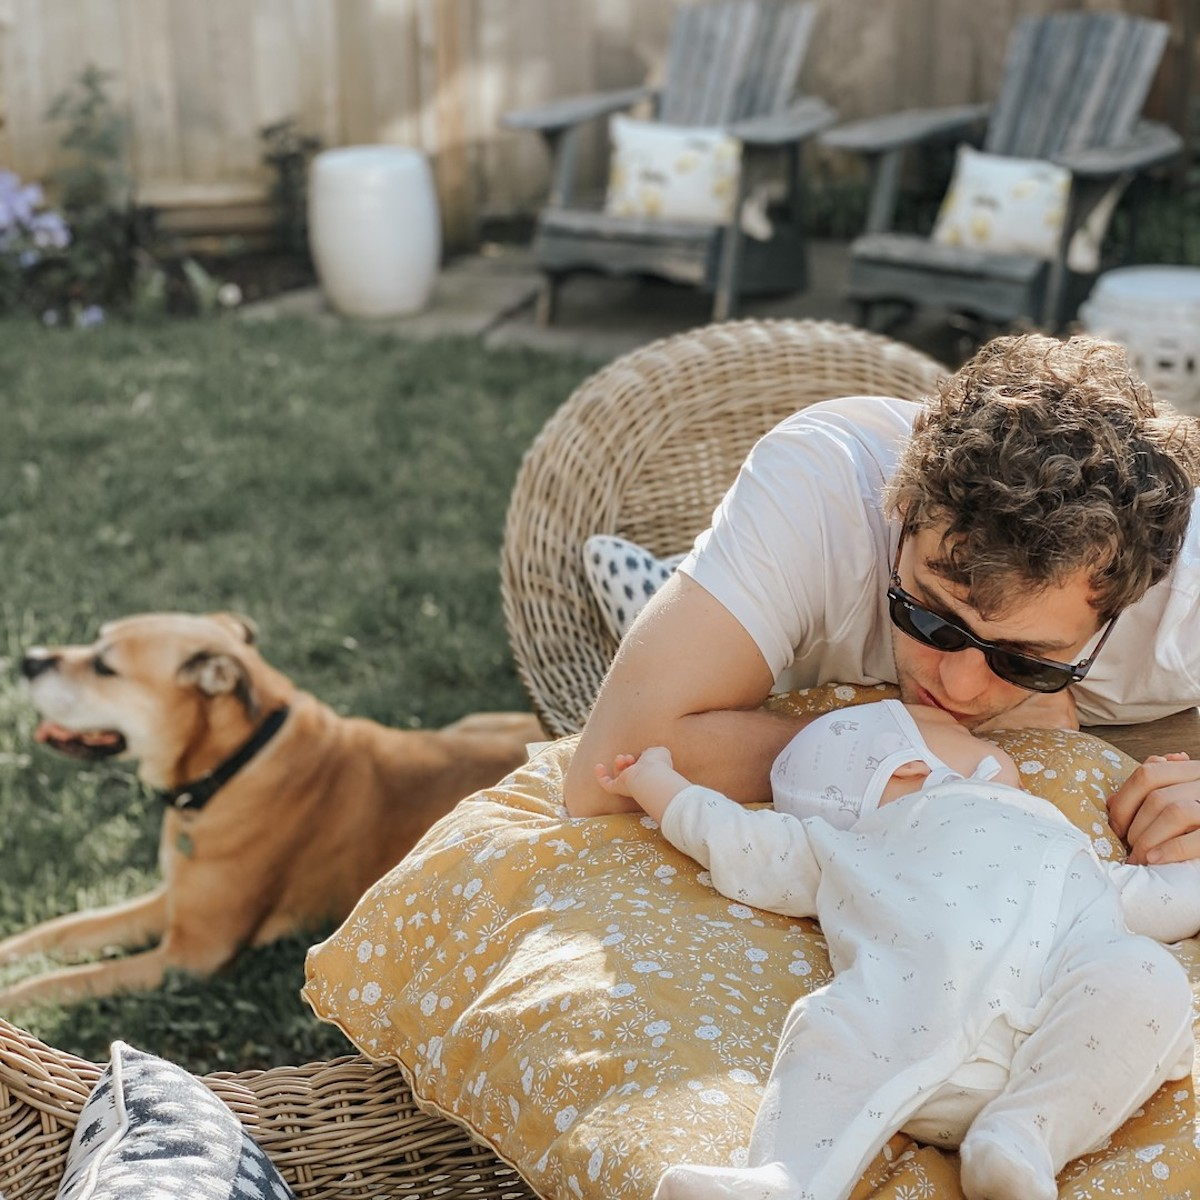 A father and his baby sitting on outdoor furiture in a backyard with their dog